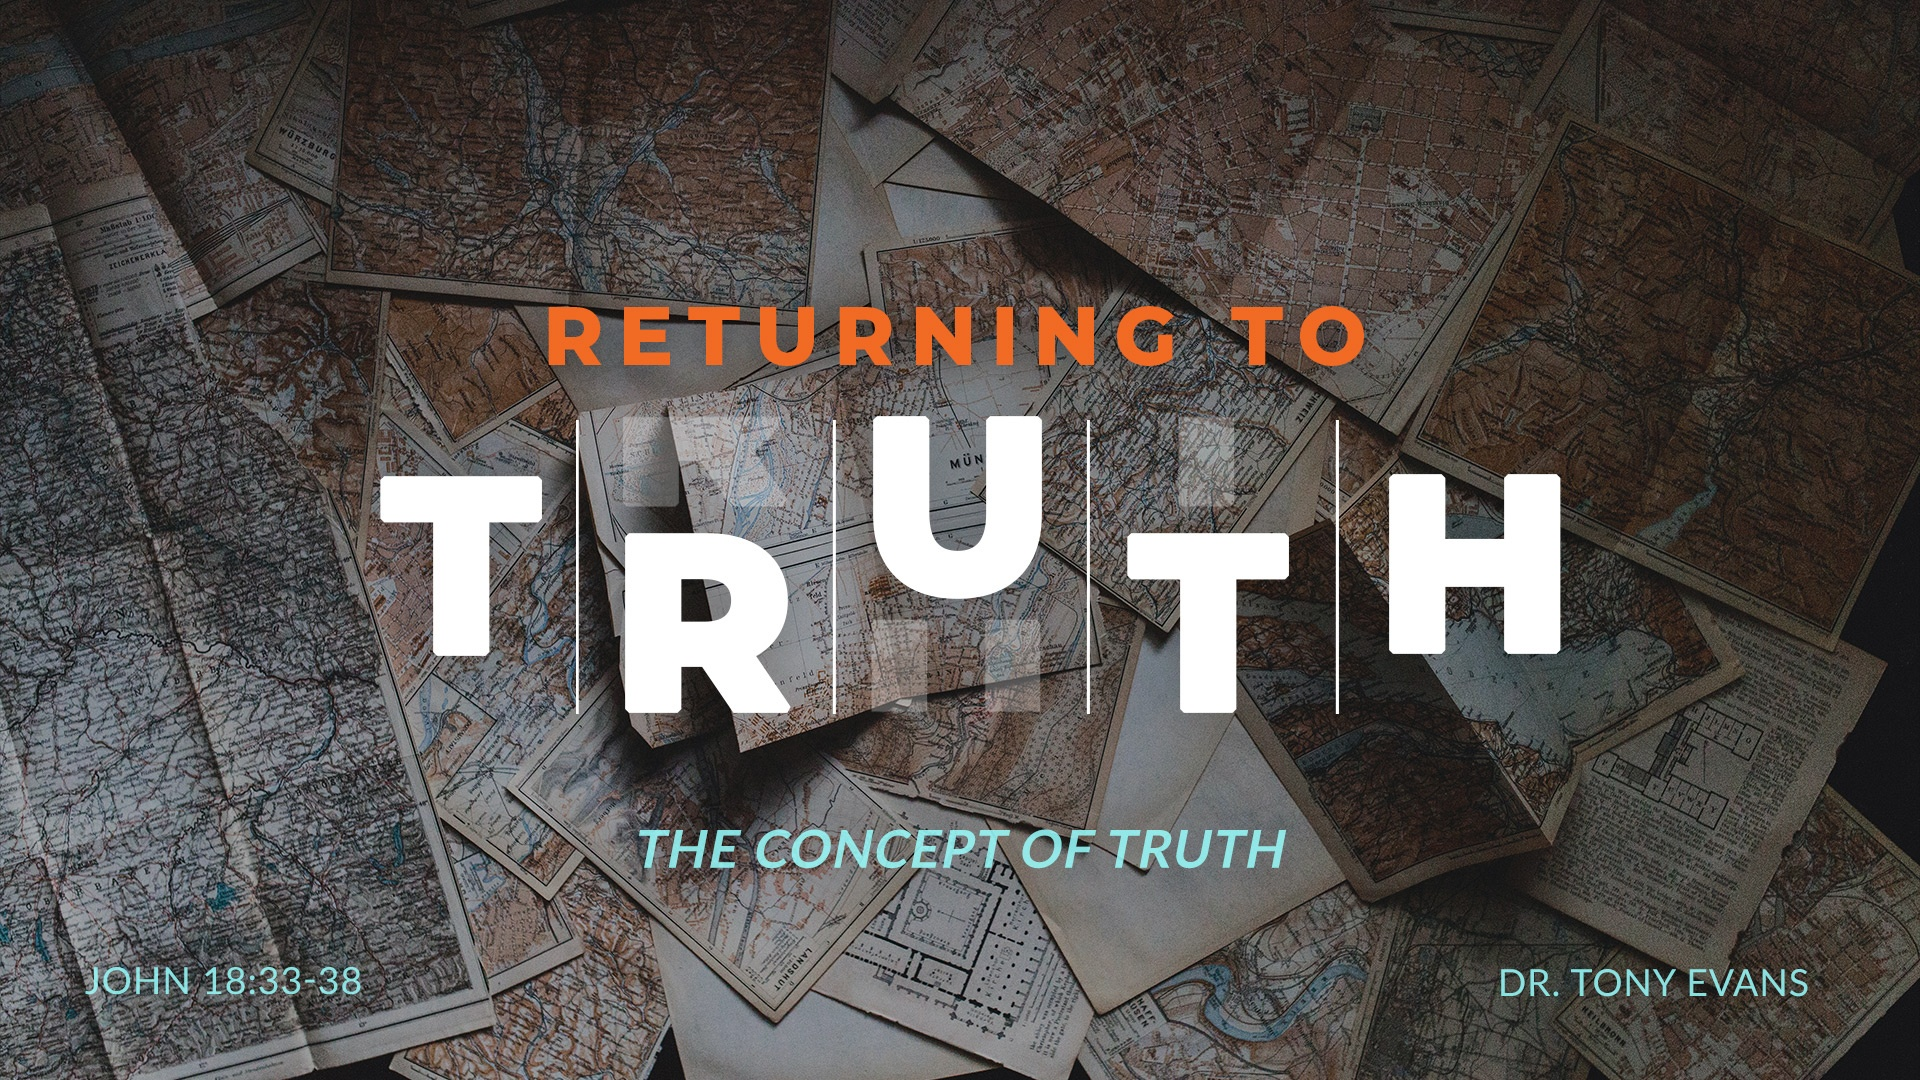 Returning to Truth: The Concept of Truth by Dr. Tony Evans